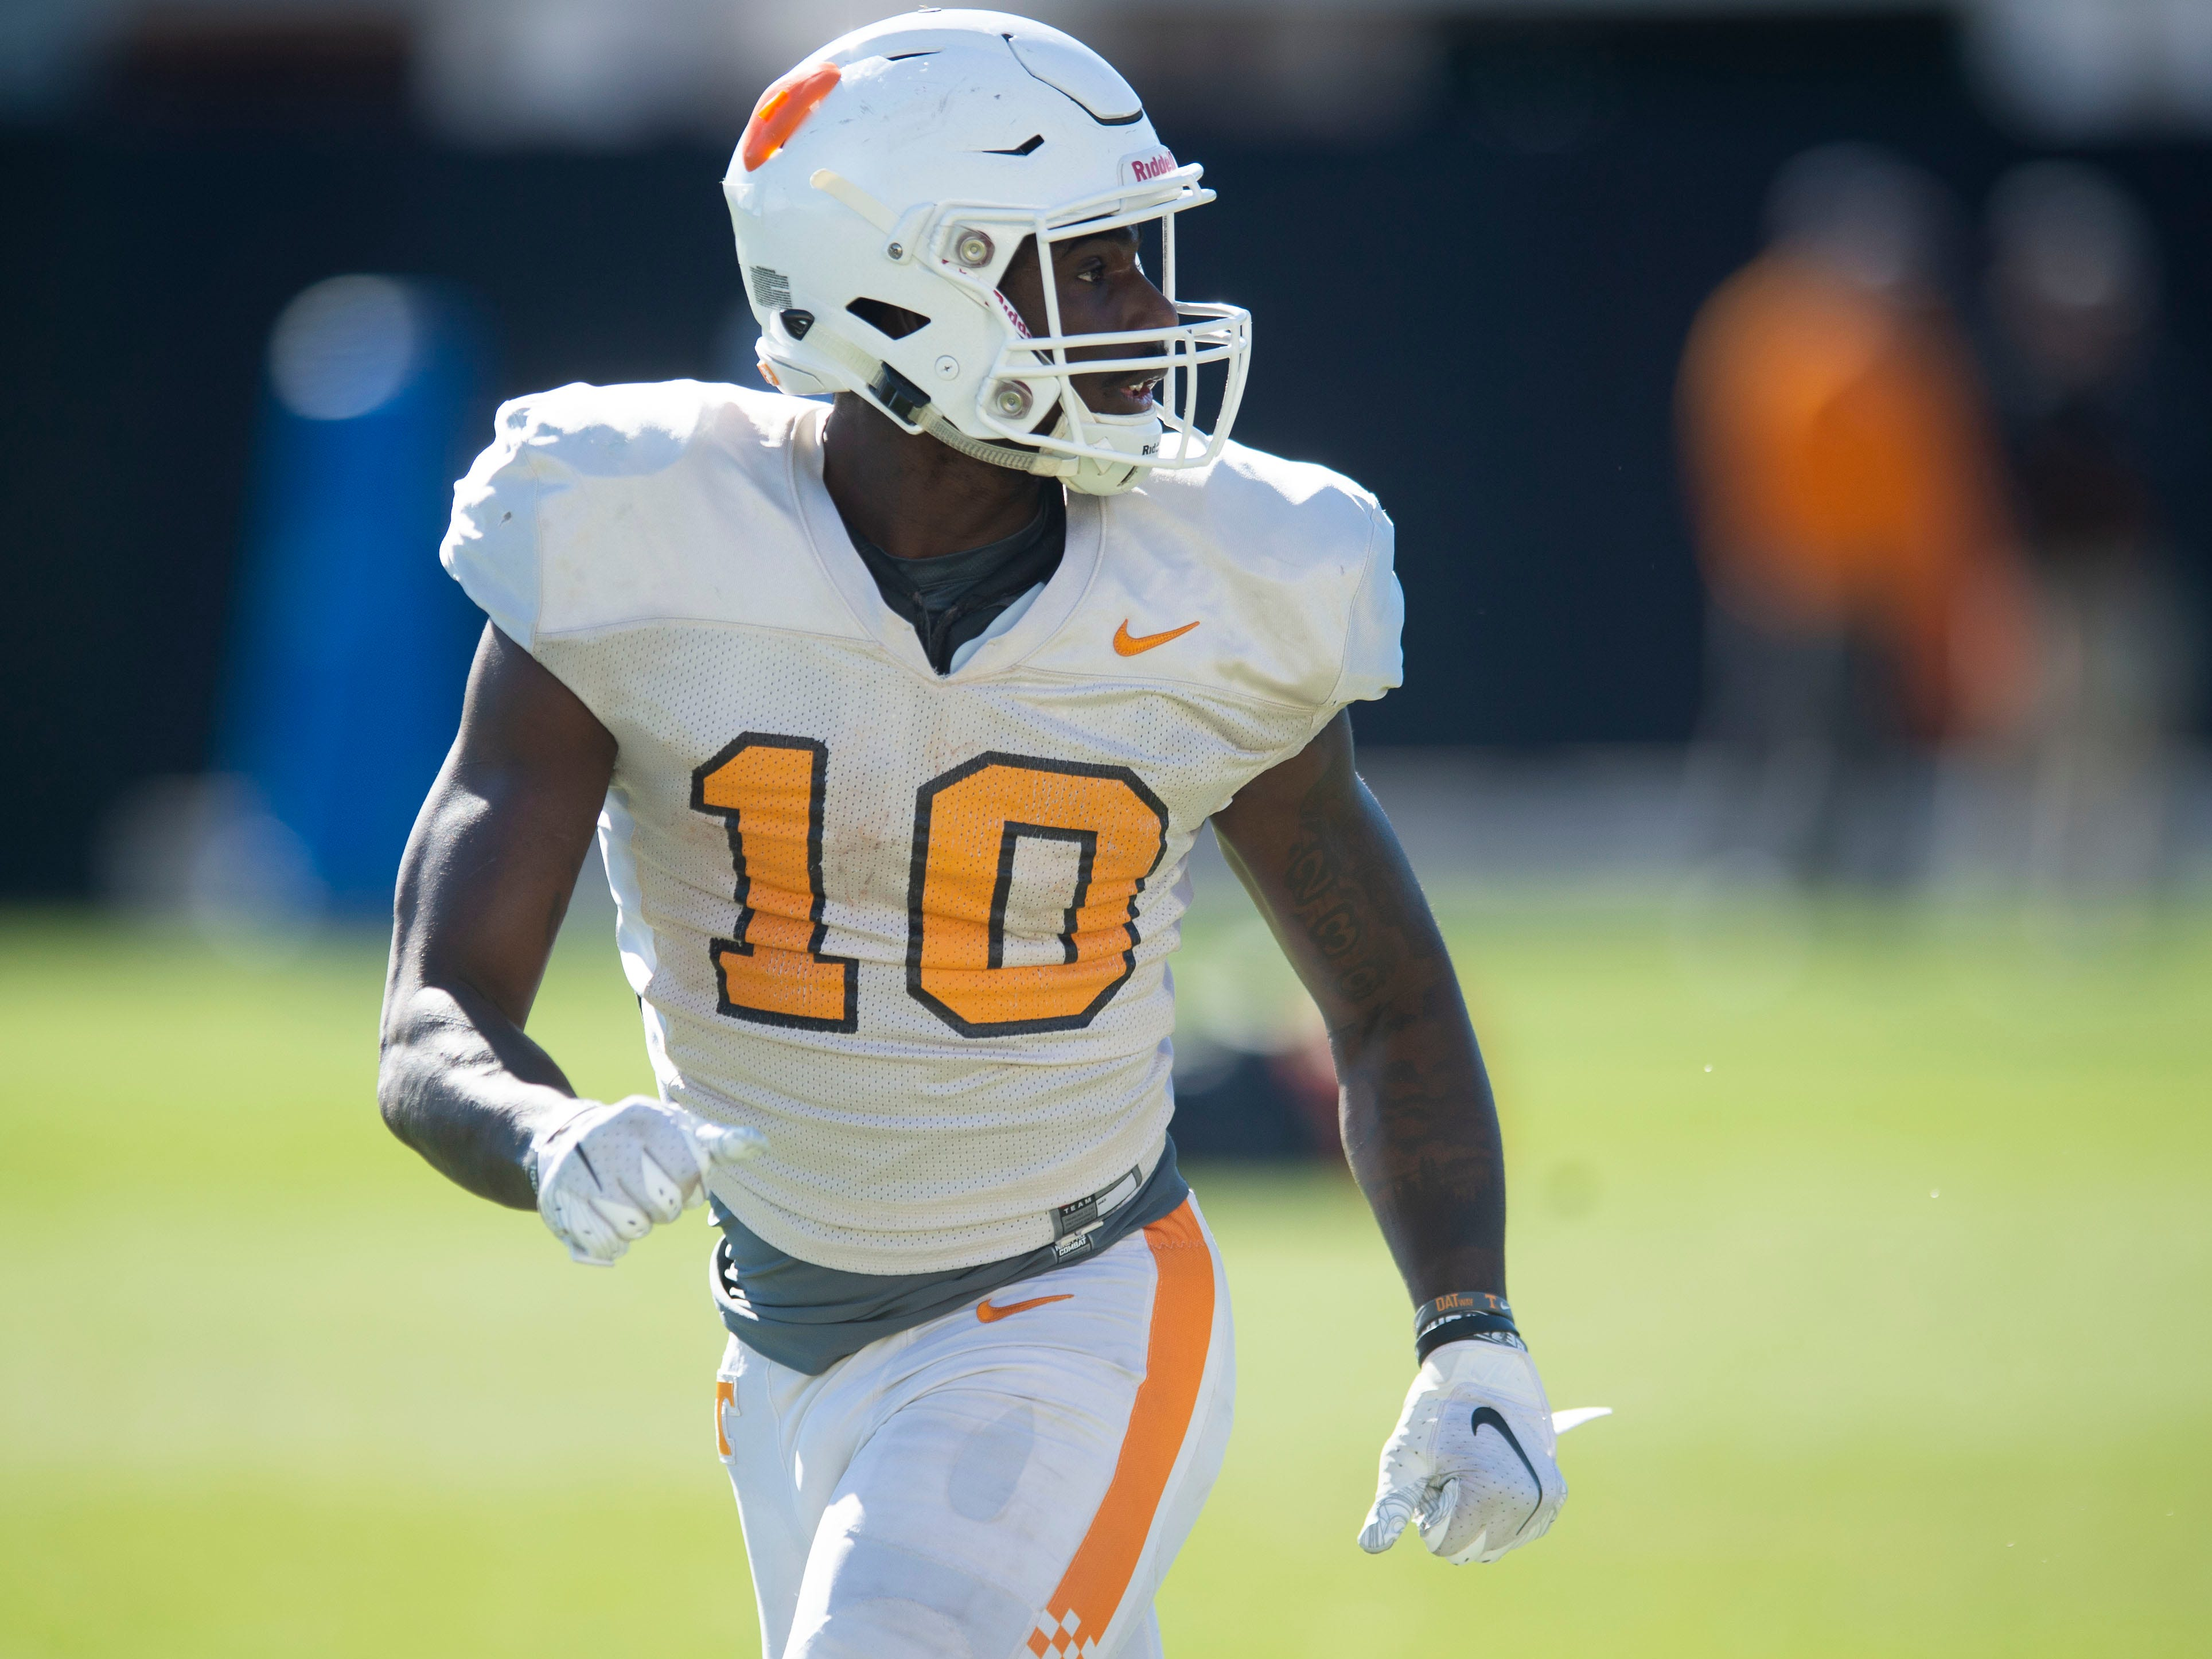 Tennessee wide receiver Tyler Byrd (10) at football practice on Friday, March 15, 2019.